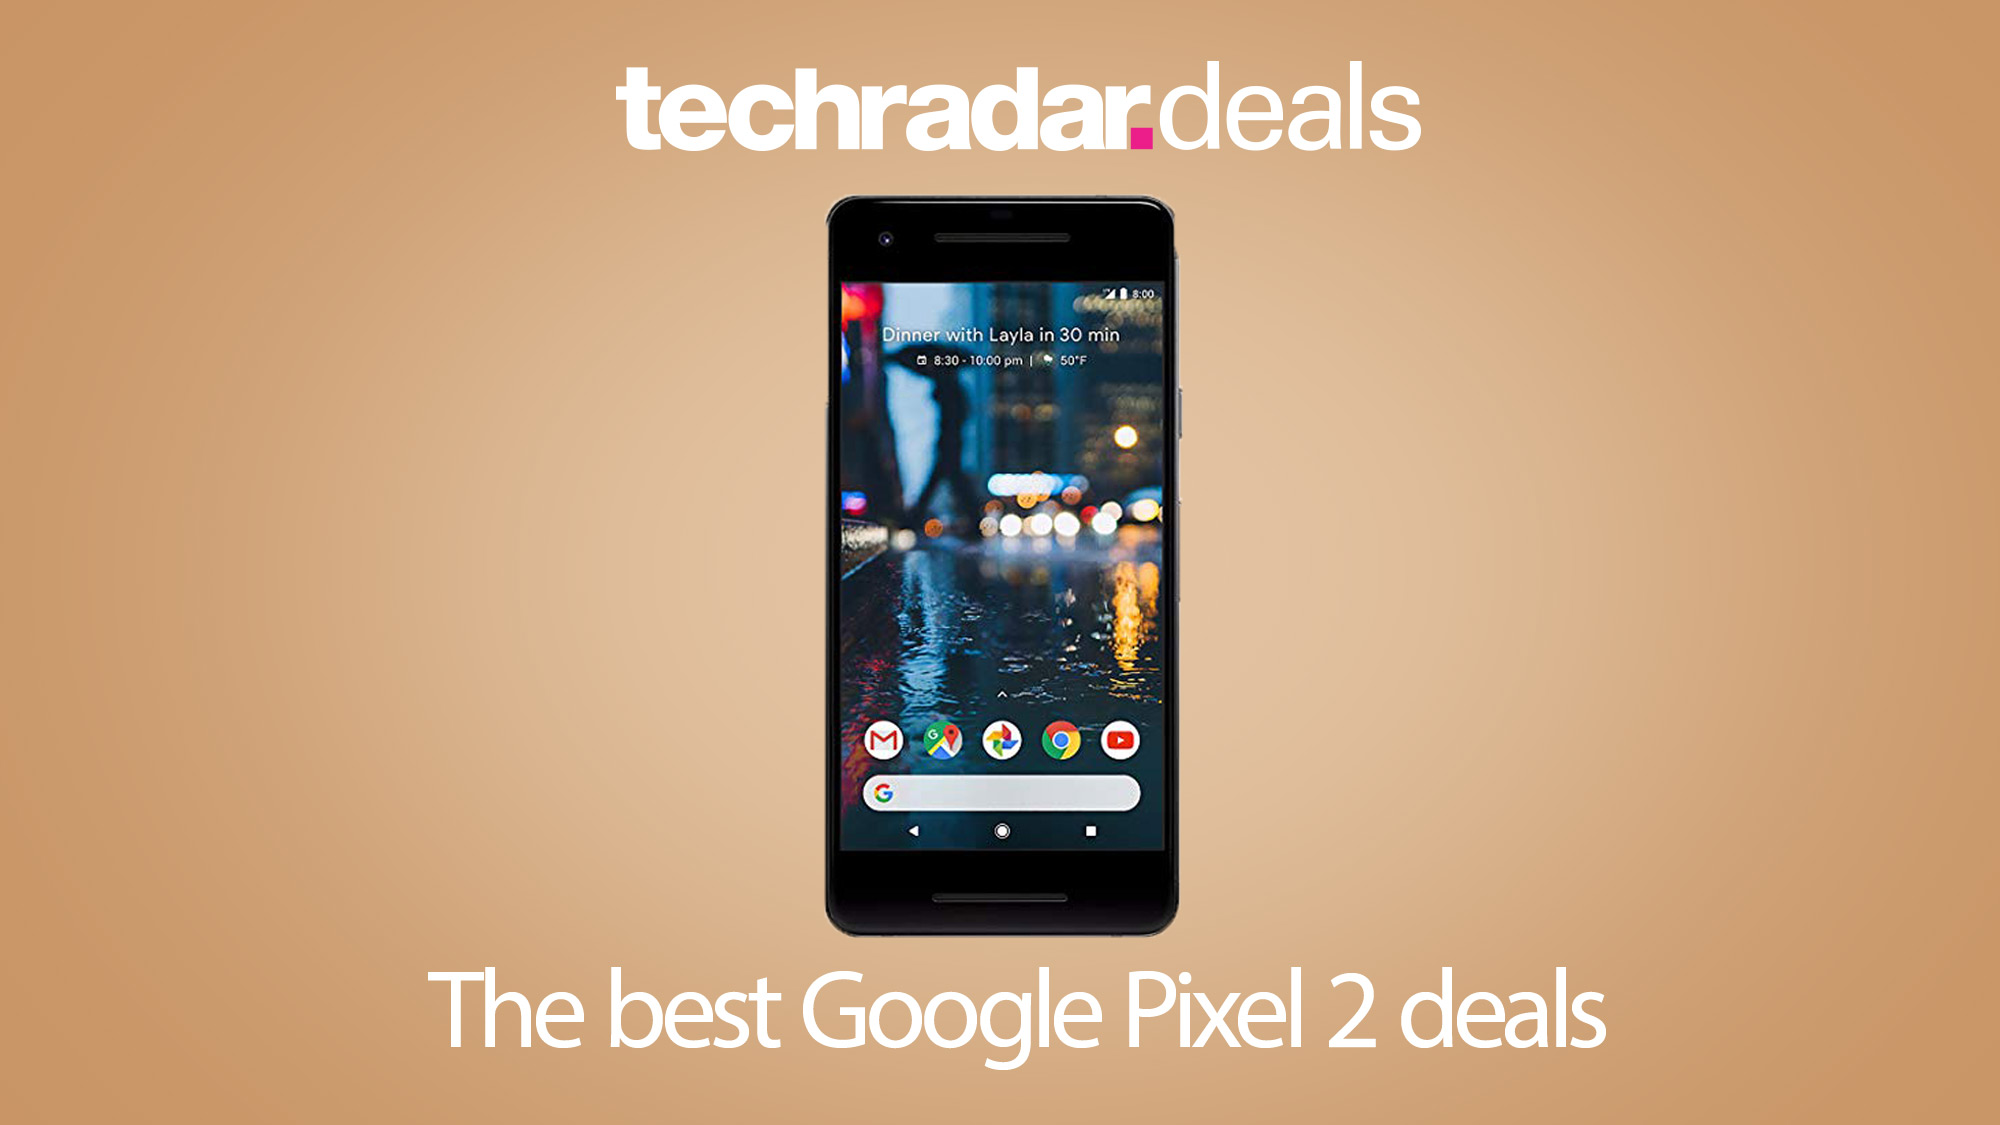 The best Google Pixel 2 and Pixel 2 XL deals in September